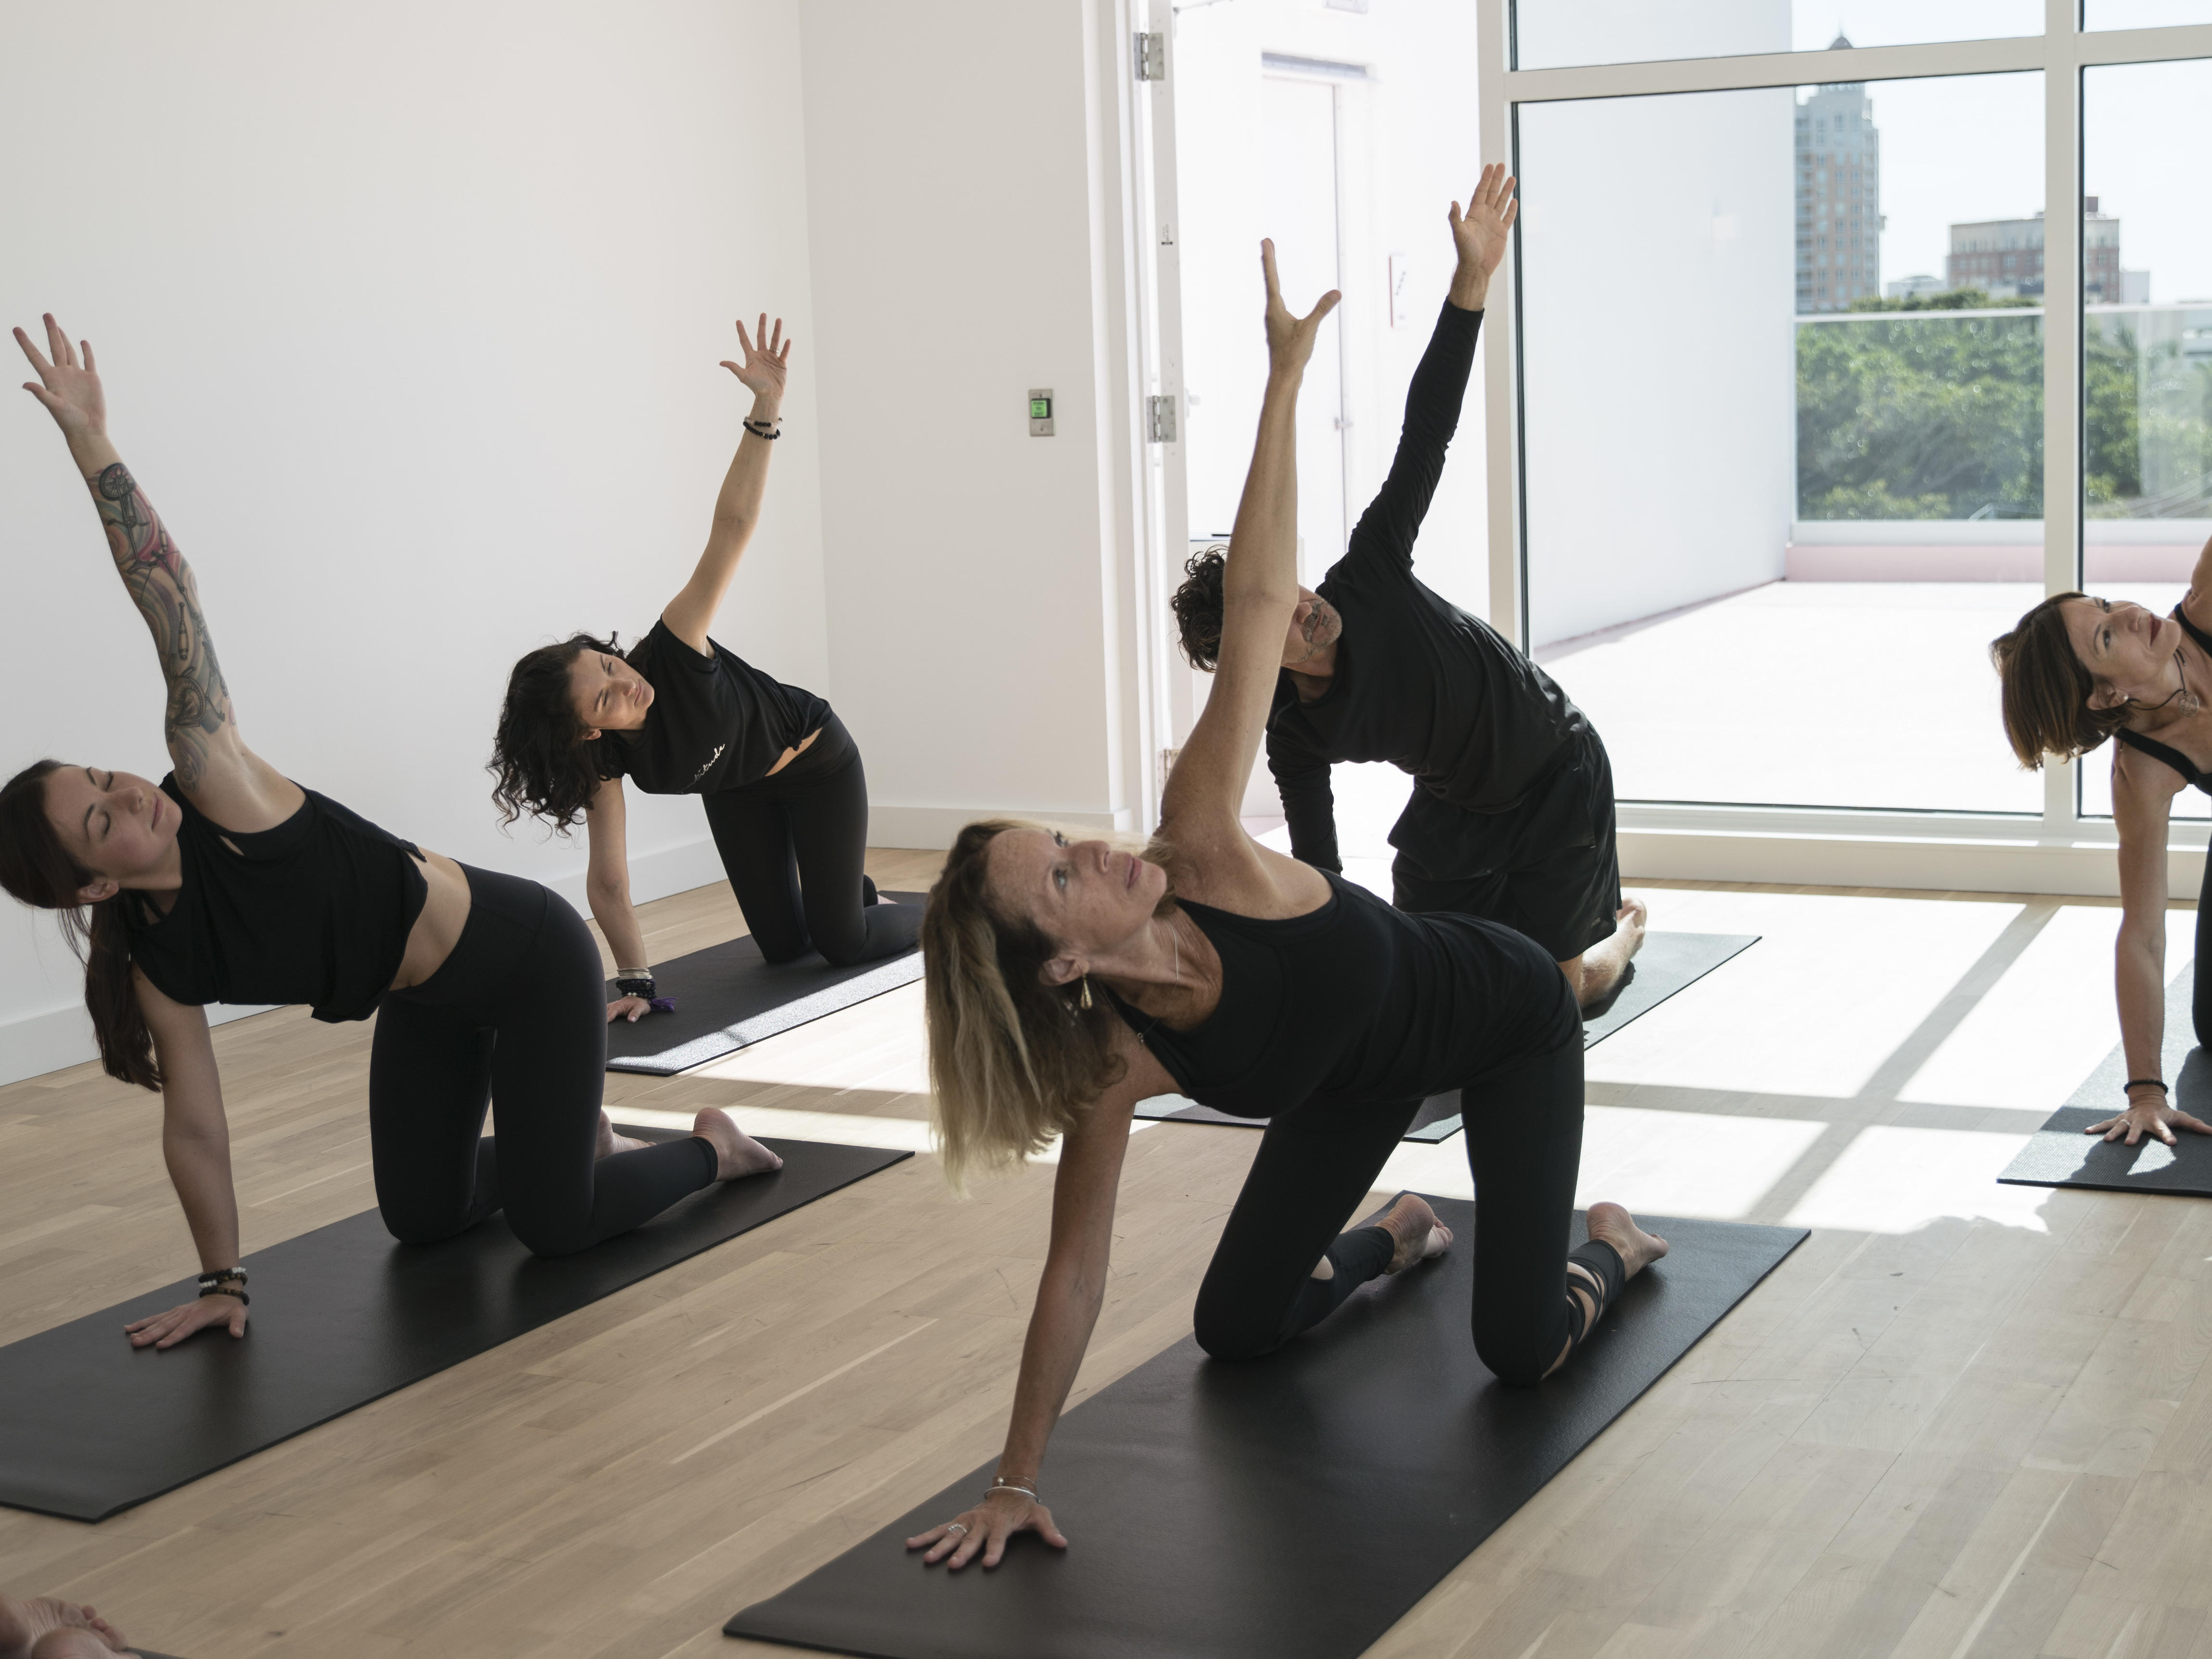 group of people practicing yoga on mats in studio